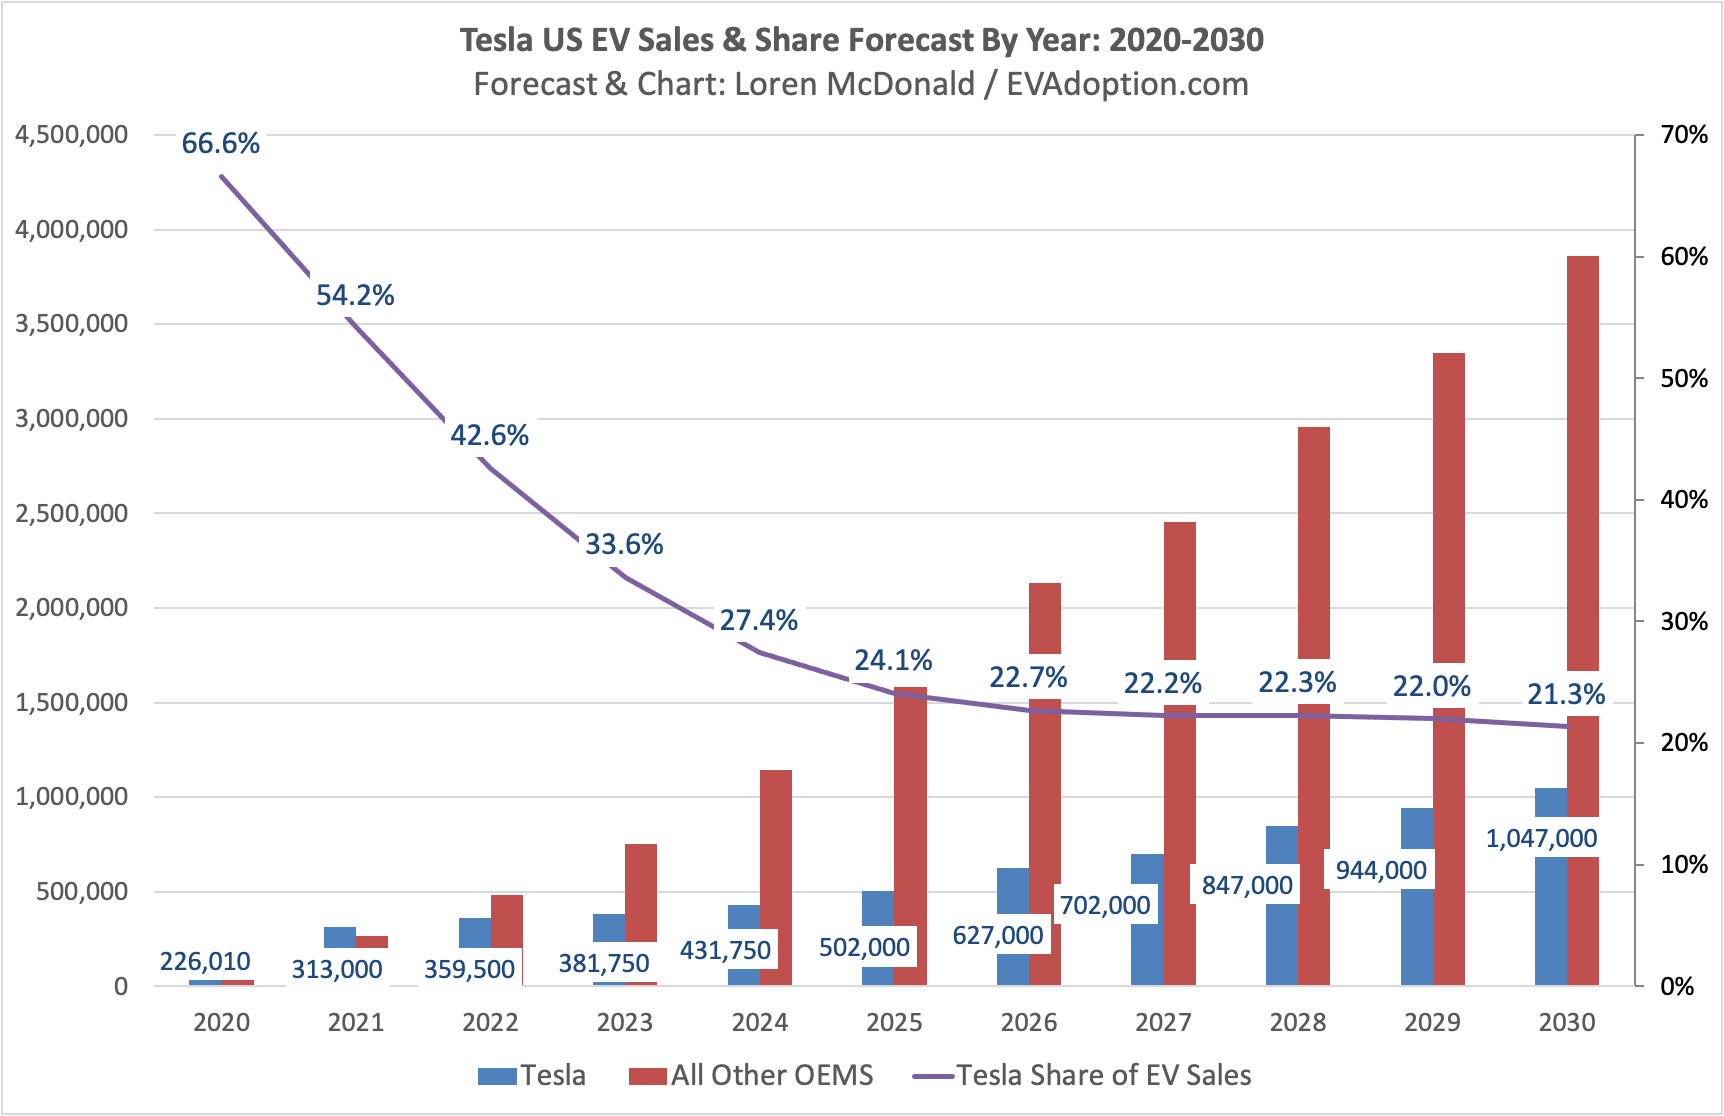 Will Tesla Dominate US Electric Vehicle Sales in 2030?